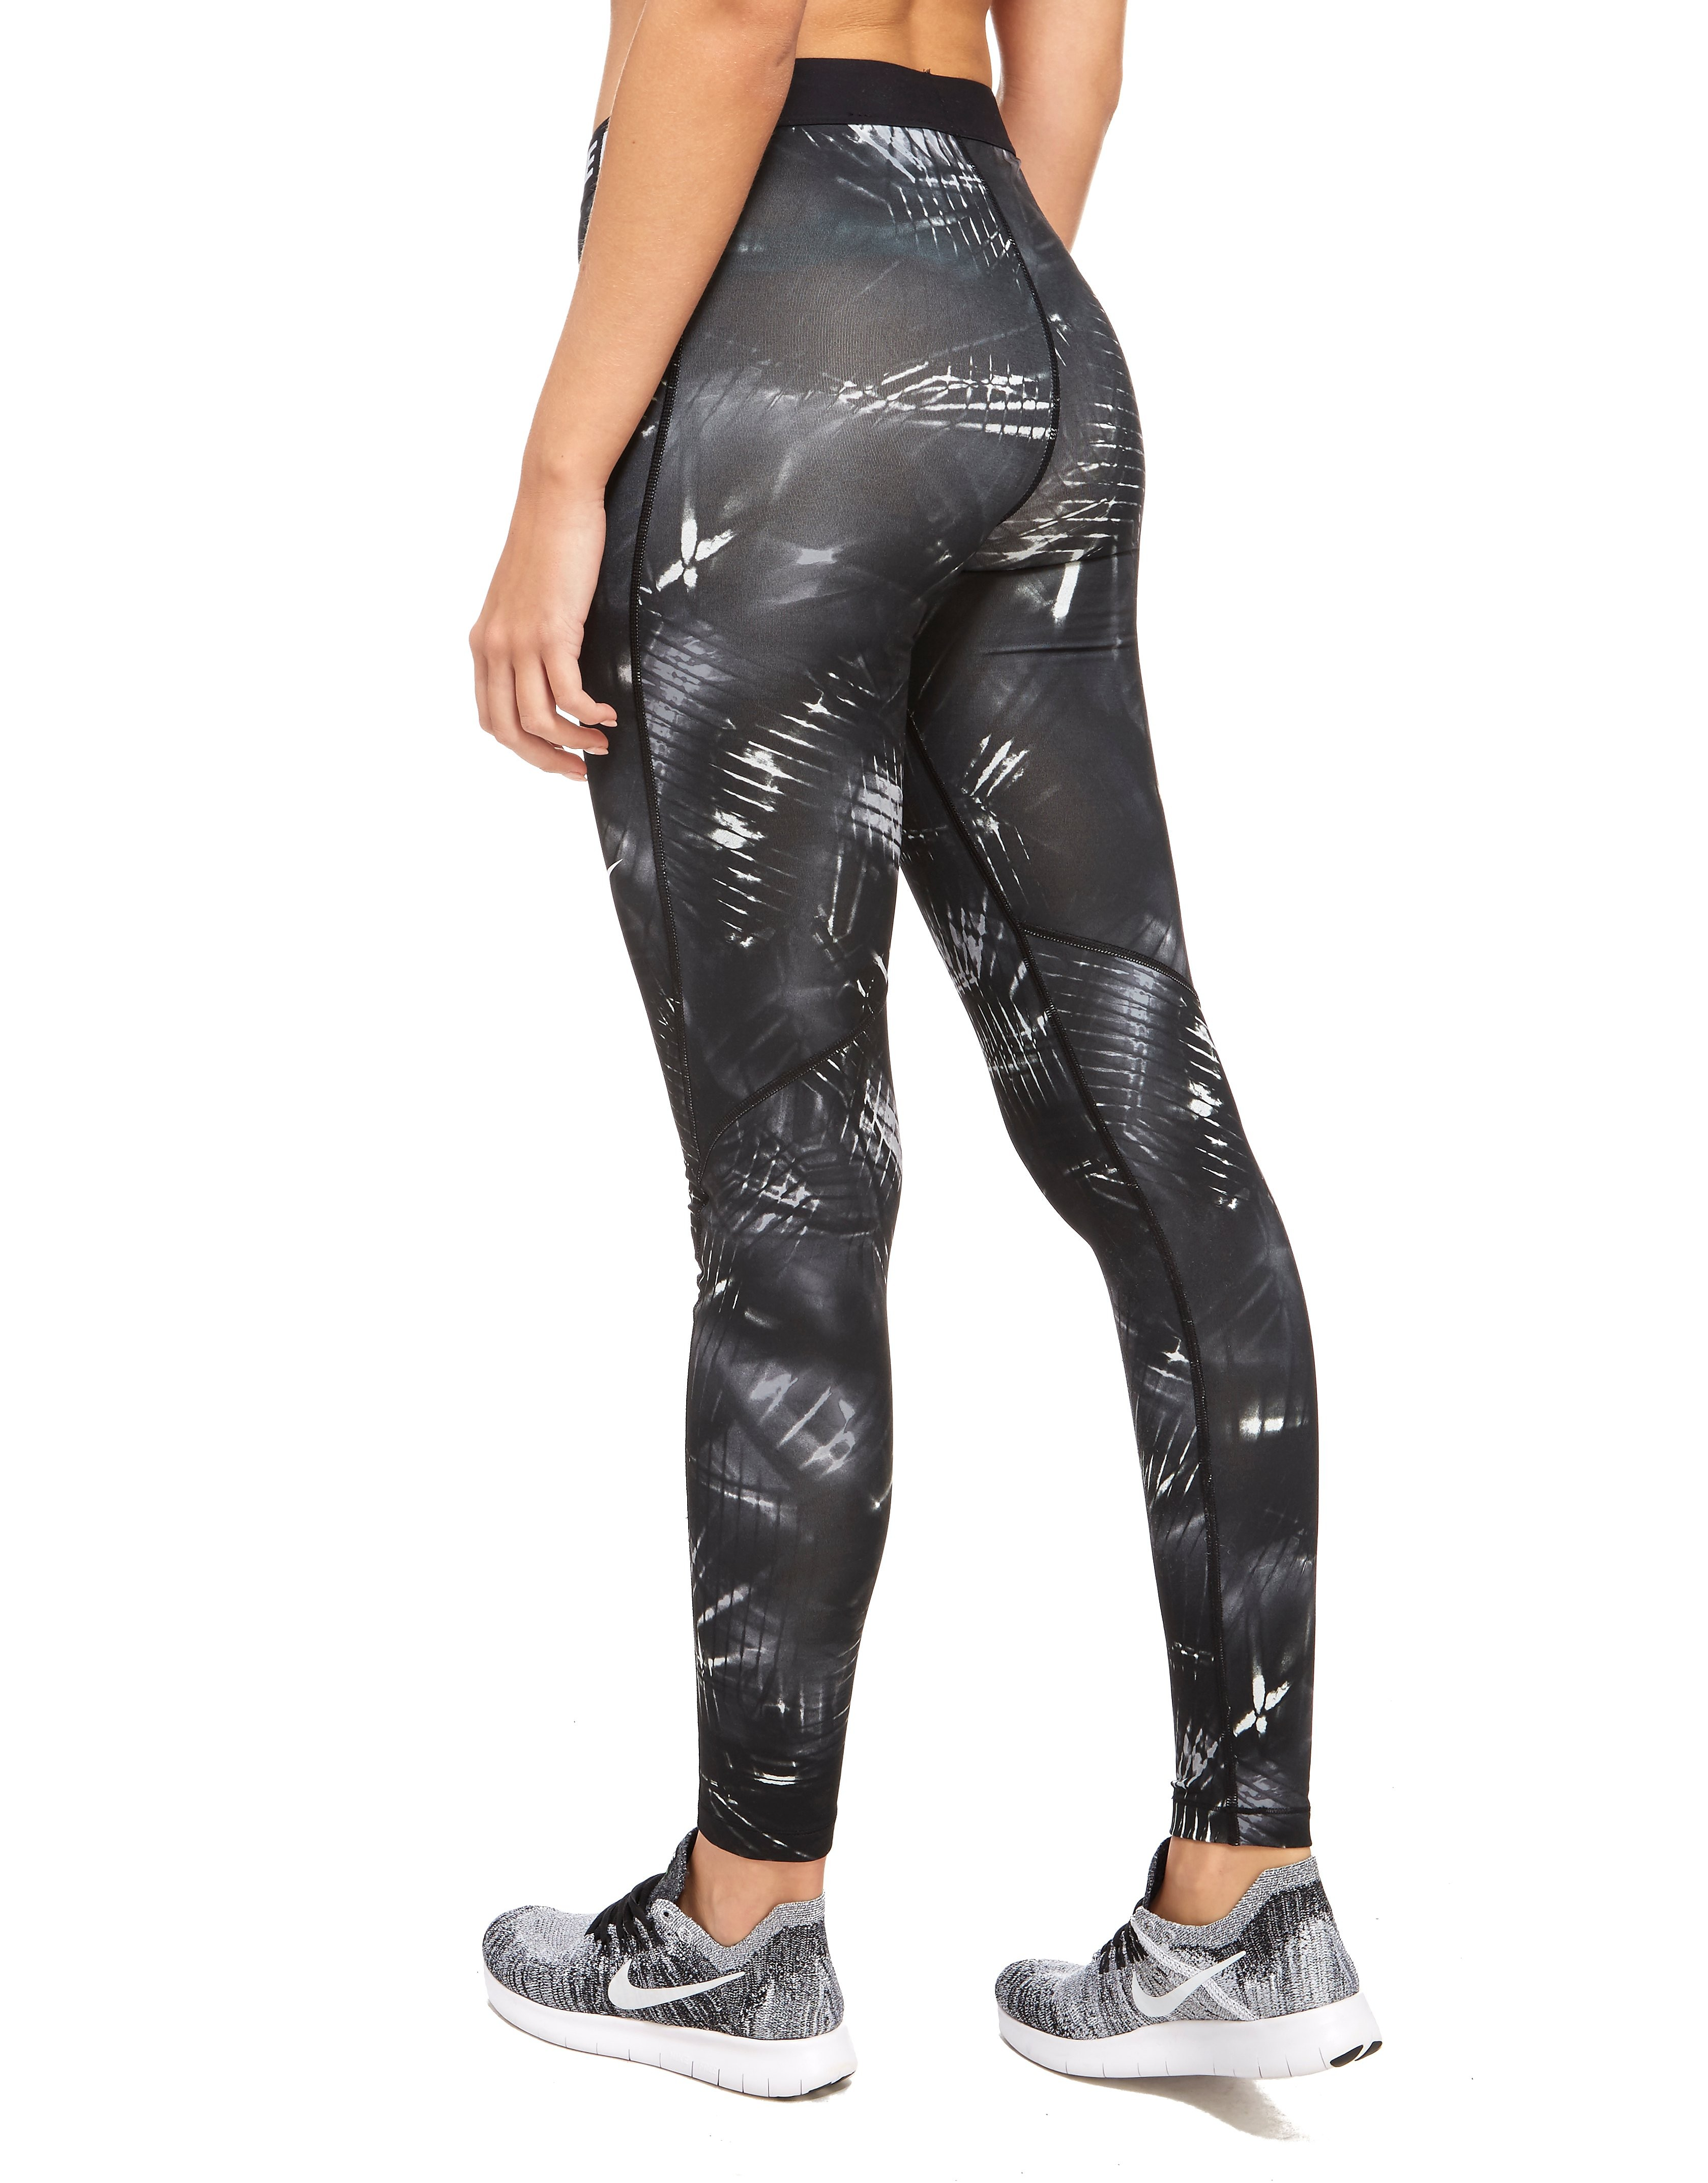 Nike Notebook All Over Print Tights